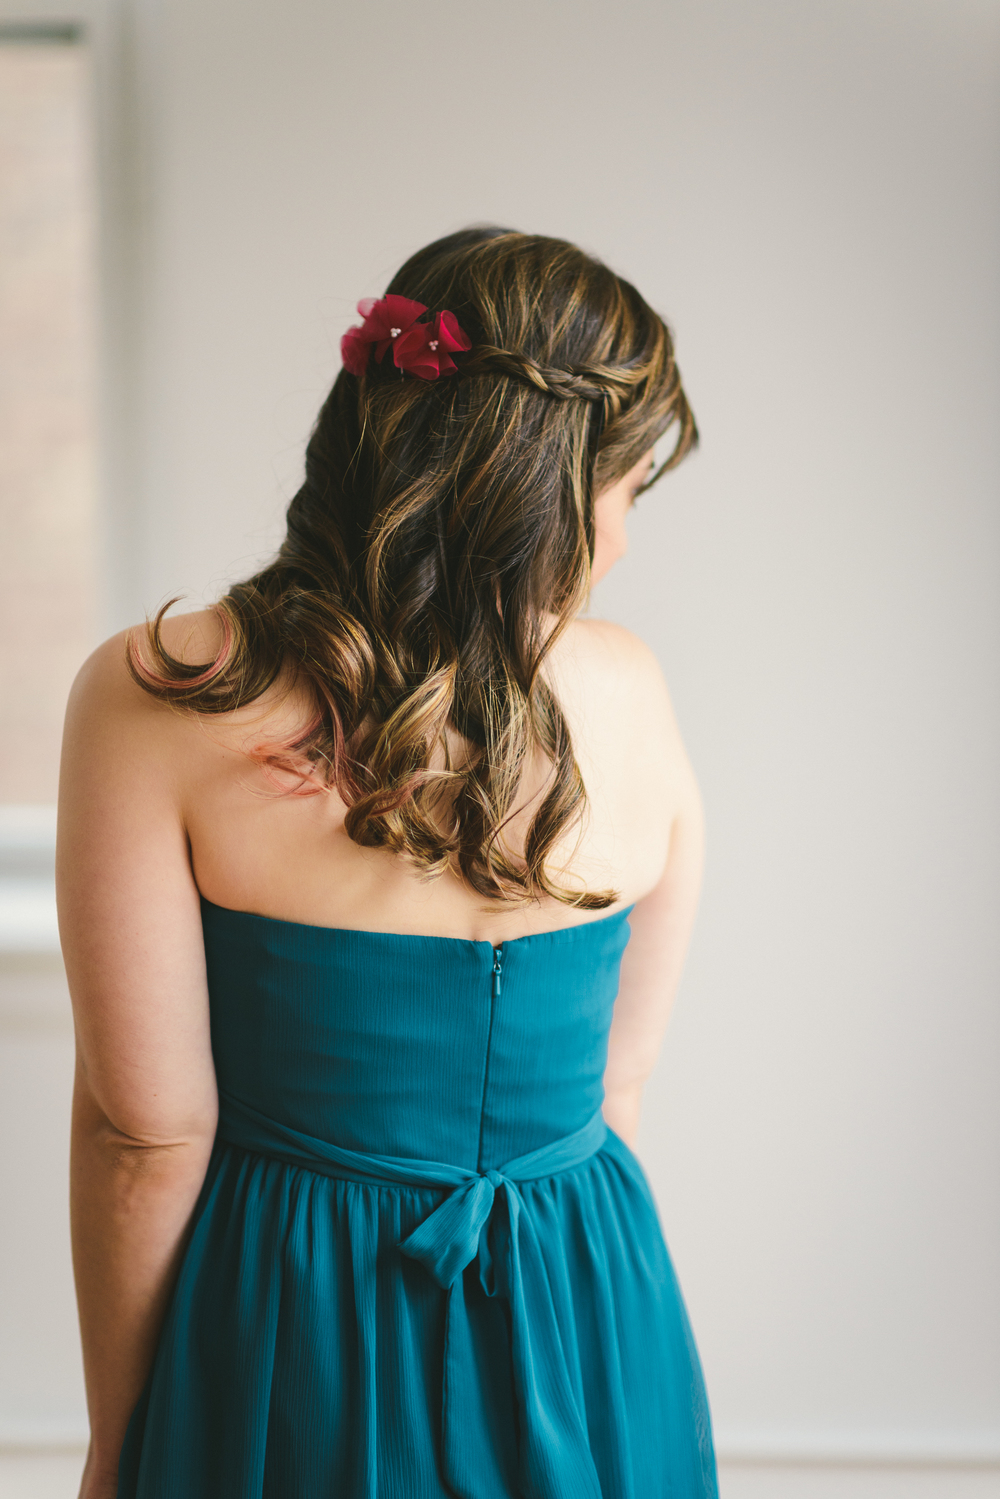 140221-Bridesmaid-Hairstyles-030.jpg